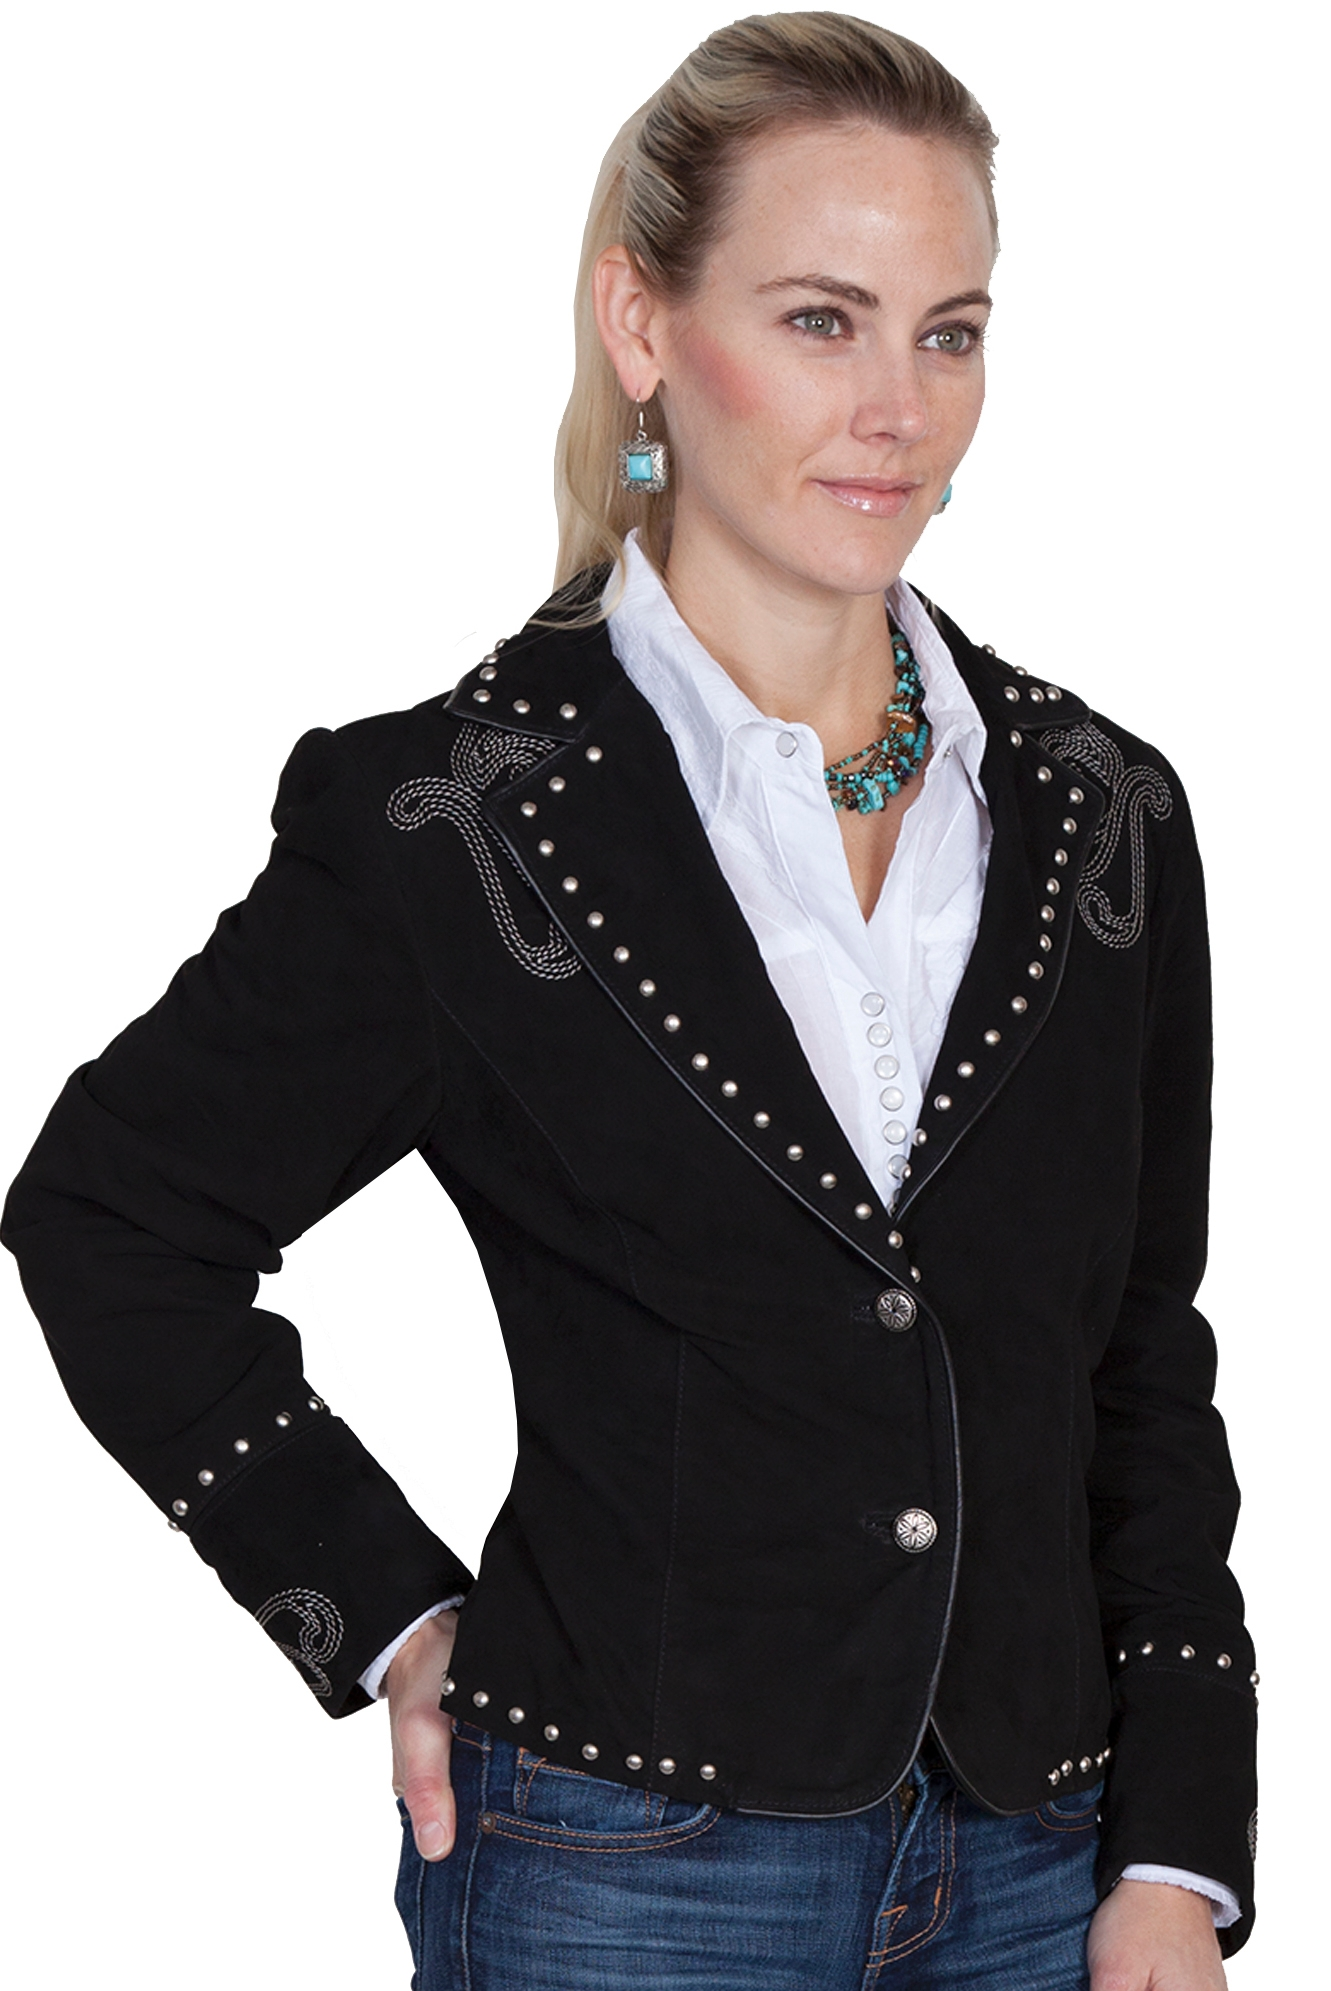 Ladies Waist length Black suede fringe western jacket by Scully